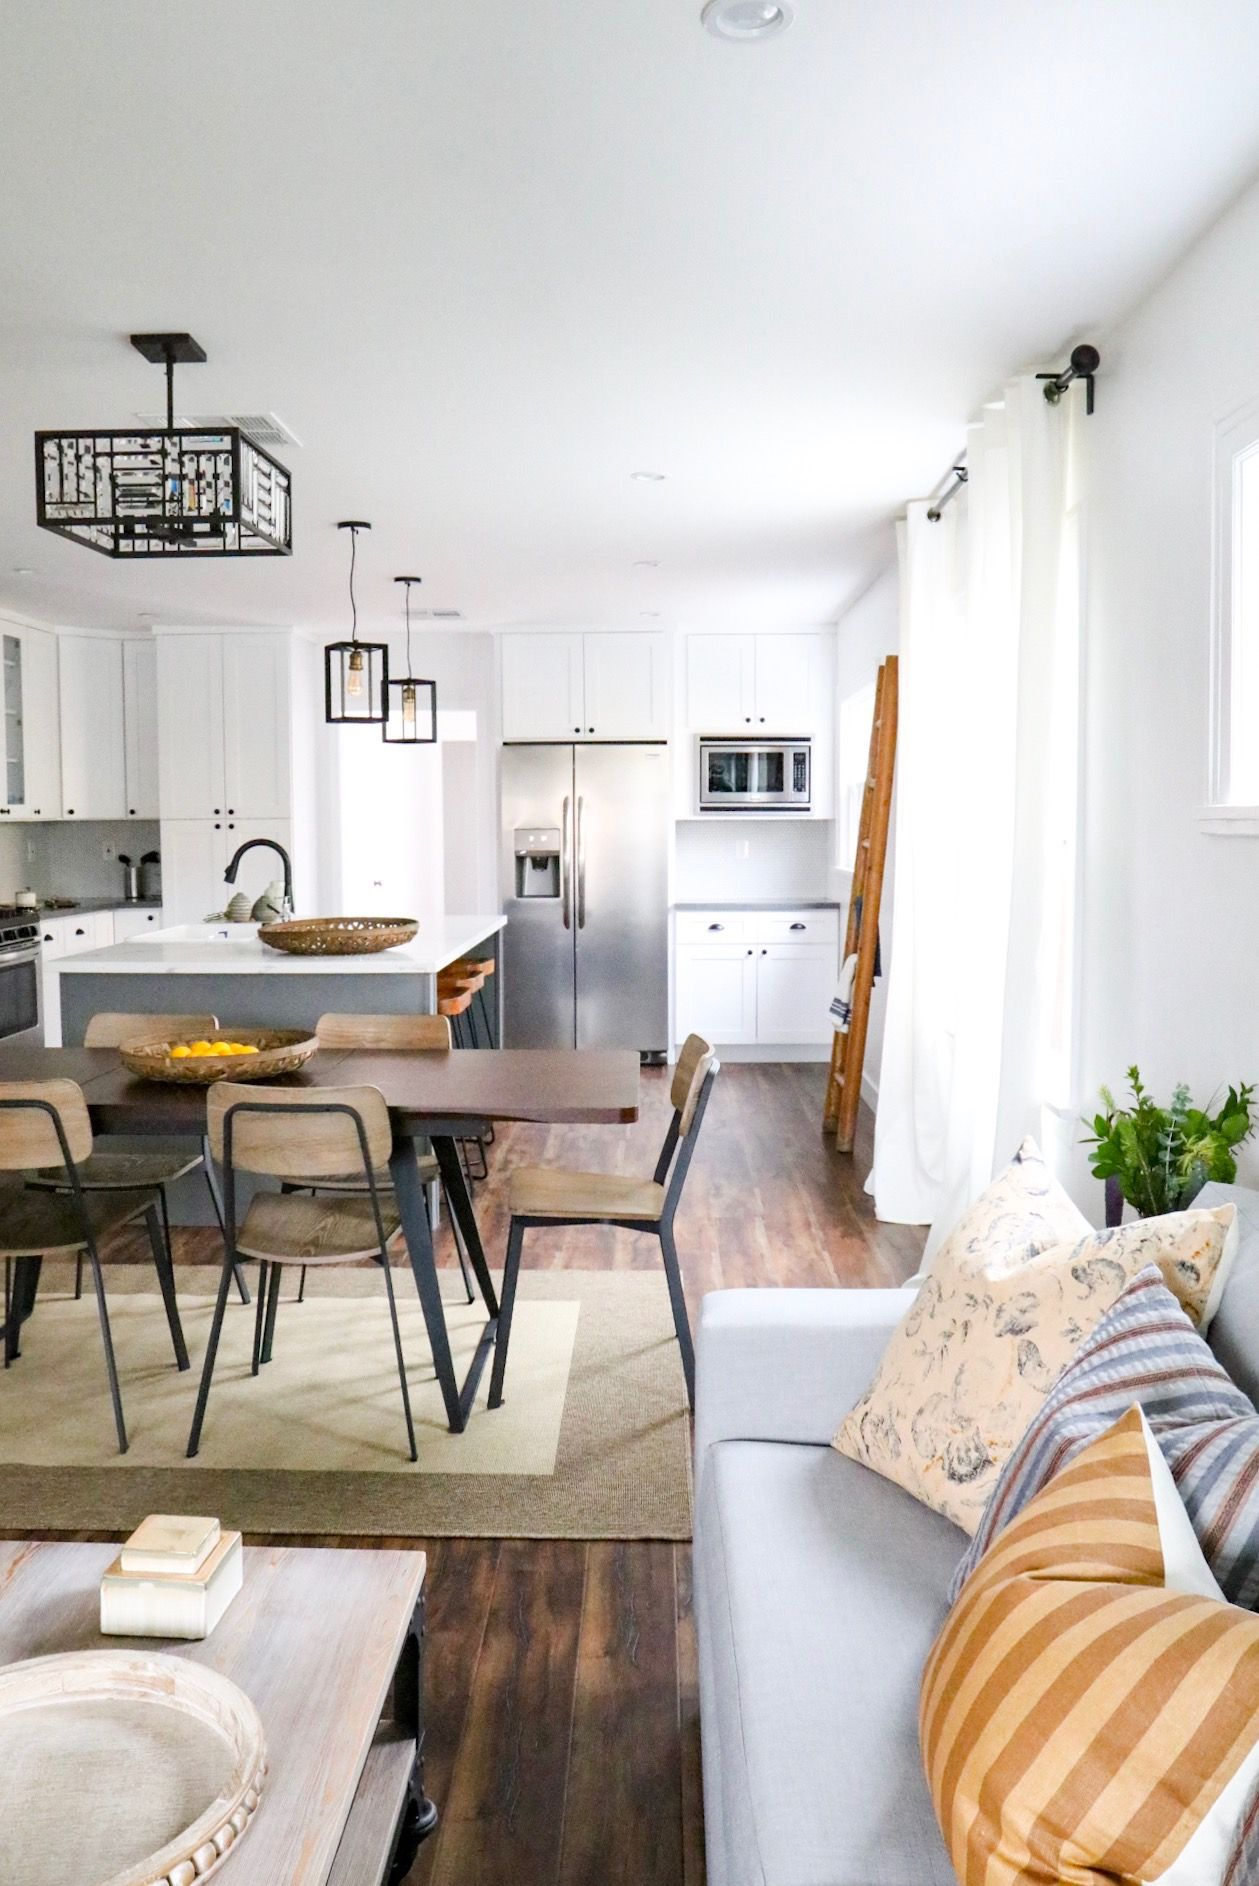 Adding boho chic and modern farmhouse looks to your decor